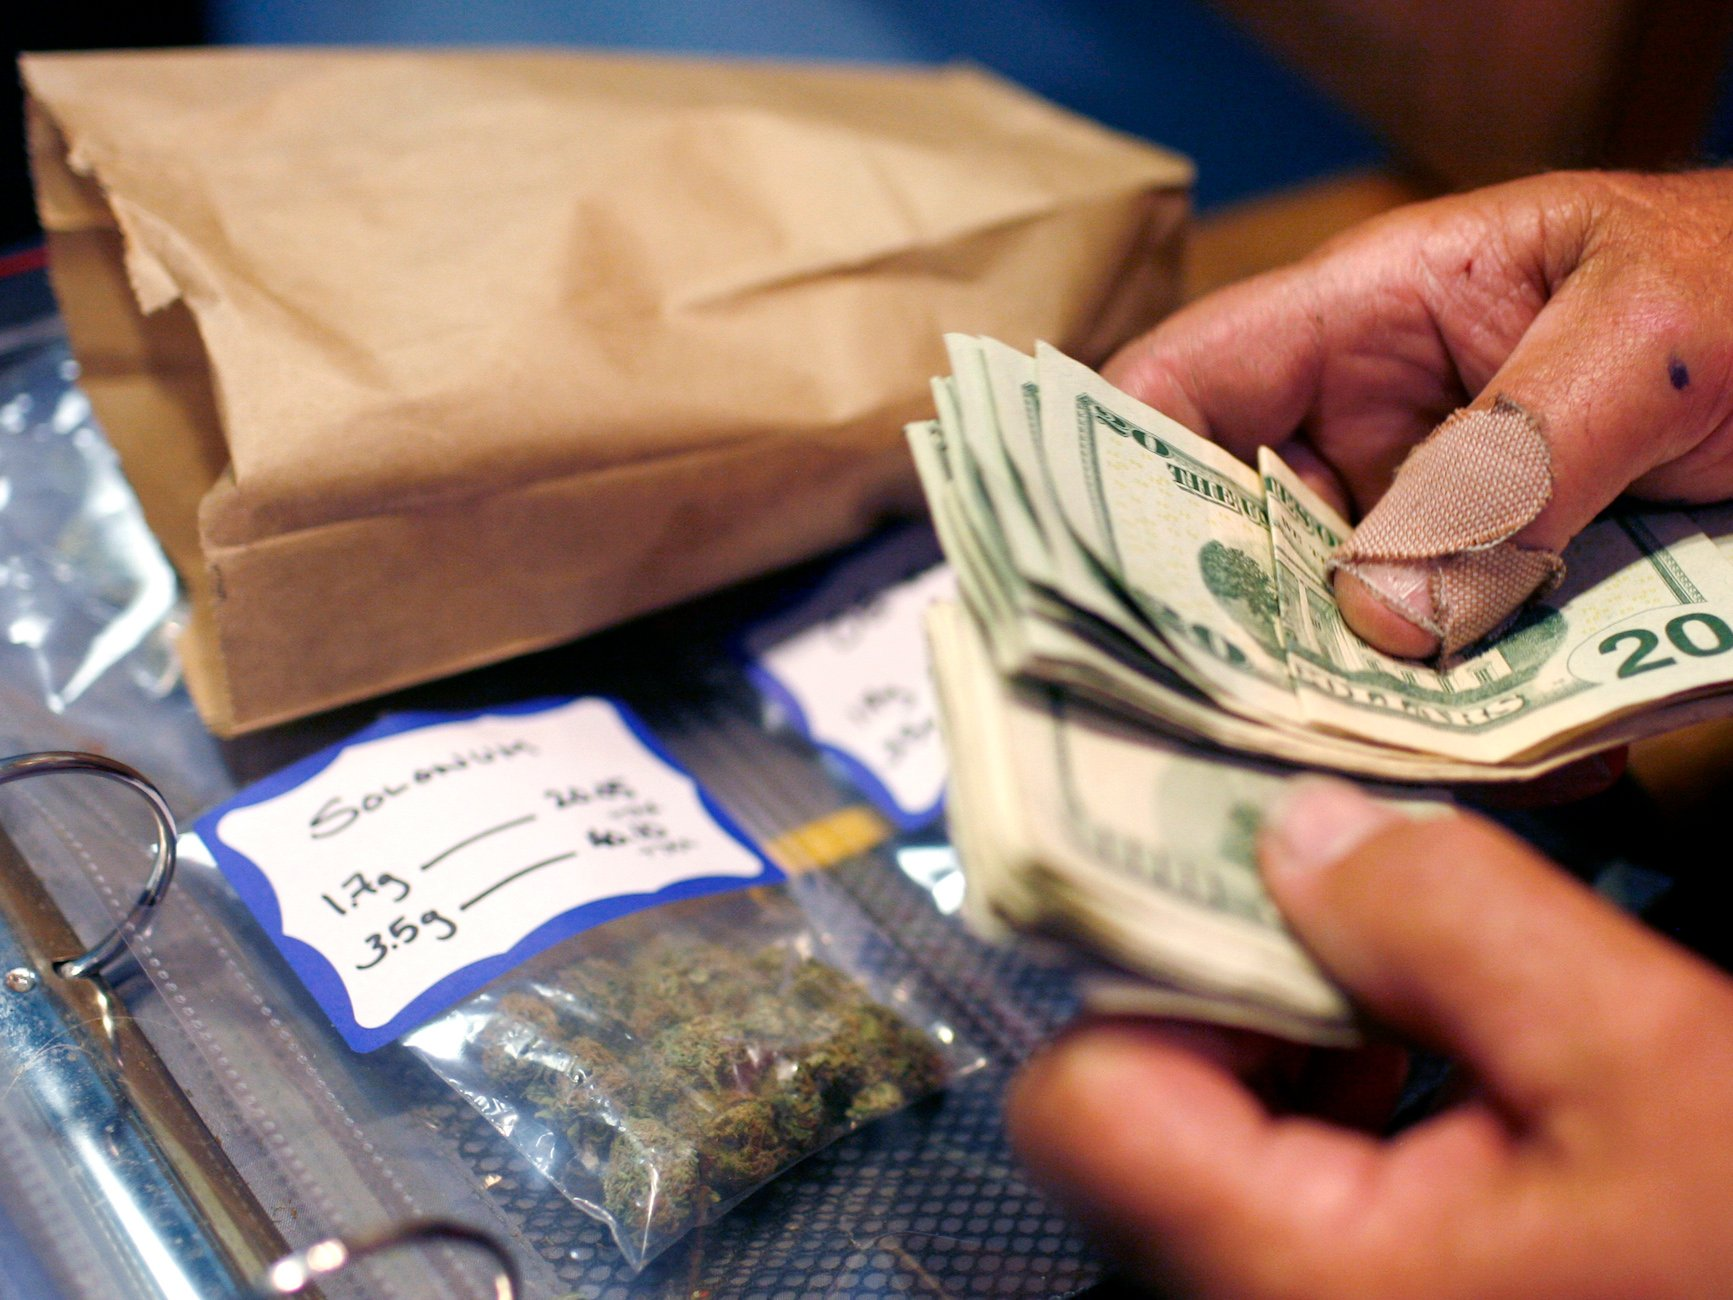 Why It Is Better to Buy Marijuana from Dispensaries Than Dealers